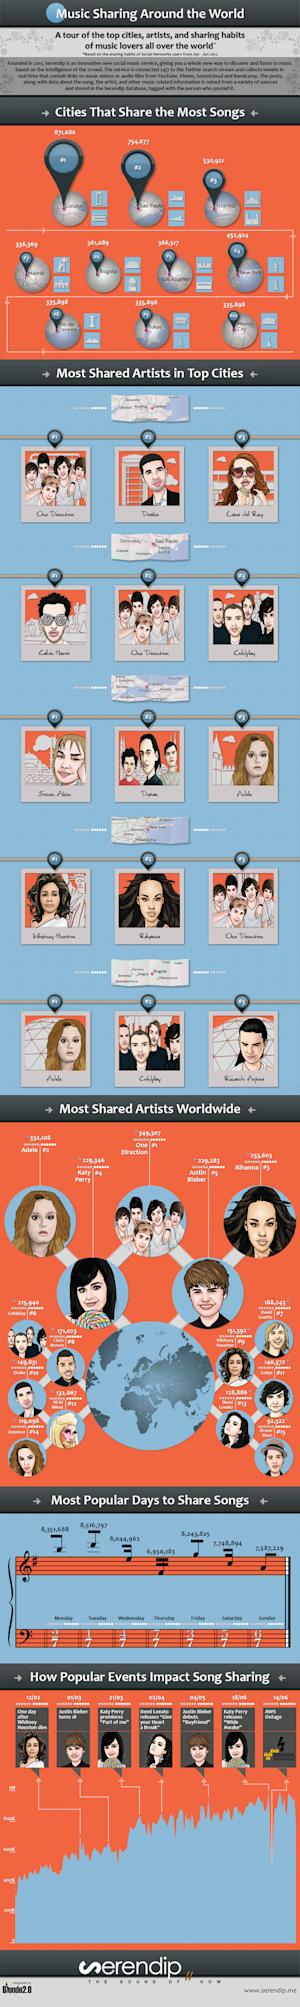 Everybody's Talking About Pop Music [INFOGRAPHIC]